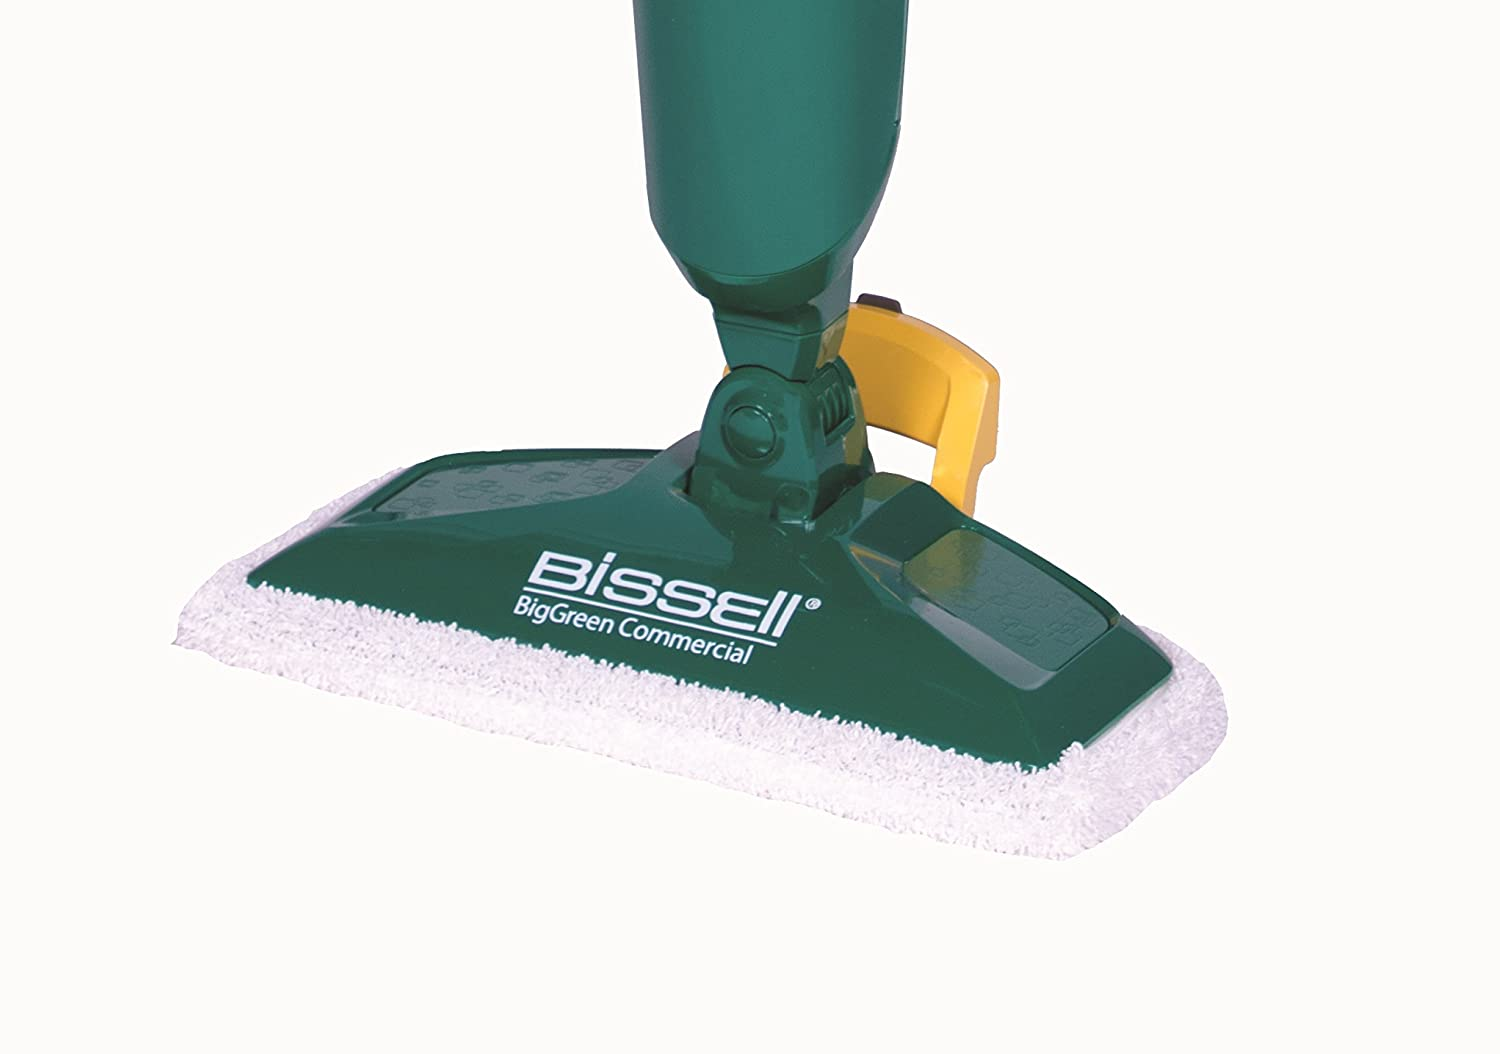 comes with Two soft pads for every day and one scrubby pad for heavy messes 12.5 wide Bissell BigGreen Commercial BGST1566 12.5 wide Steam Mop Power Steamer